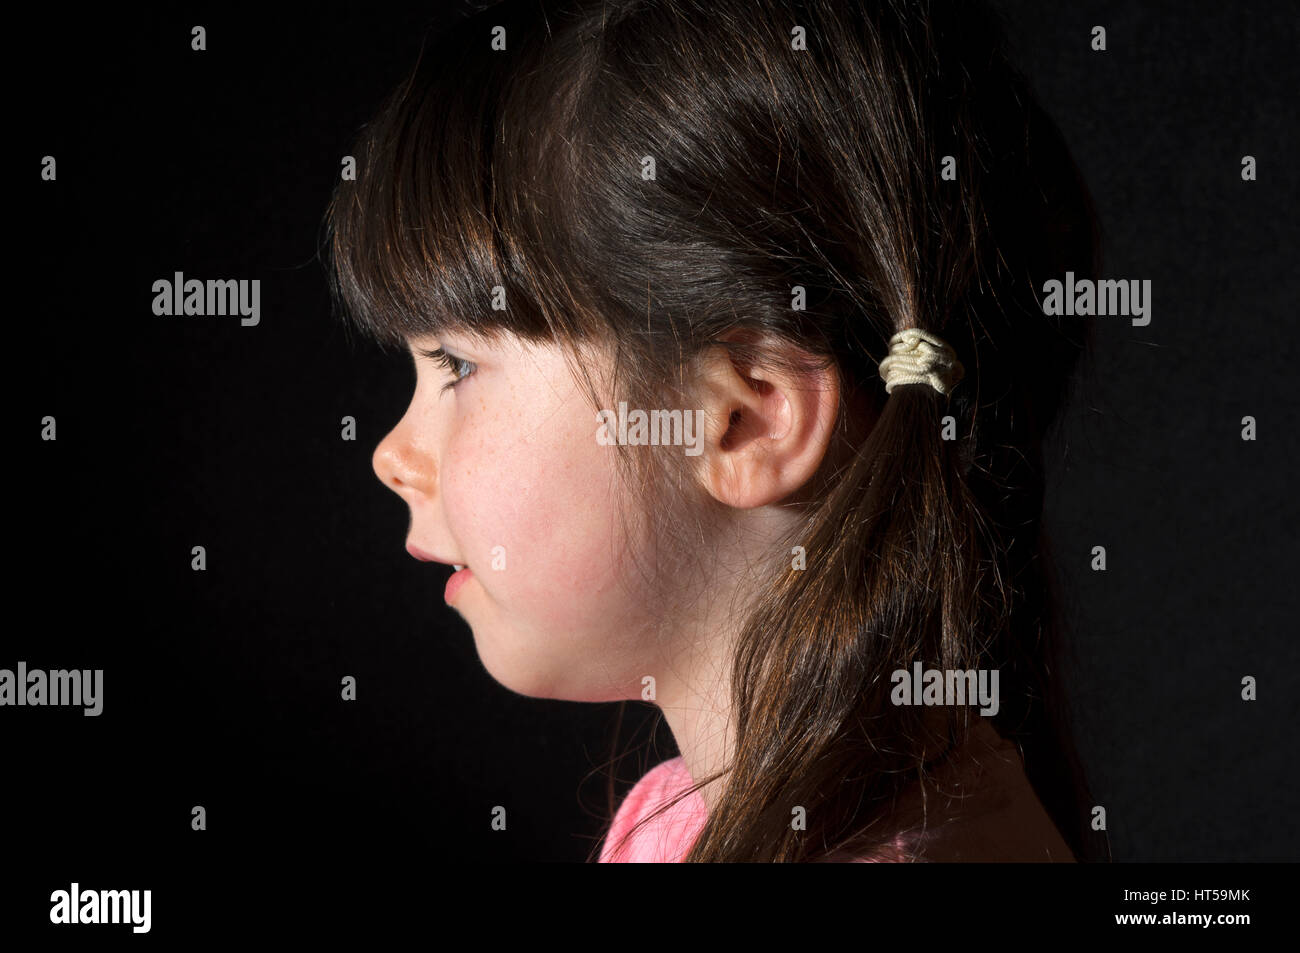 Childrens Hairstyle Stock Photos Childrens Hairstyle Stock Images